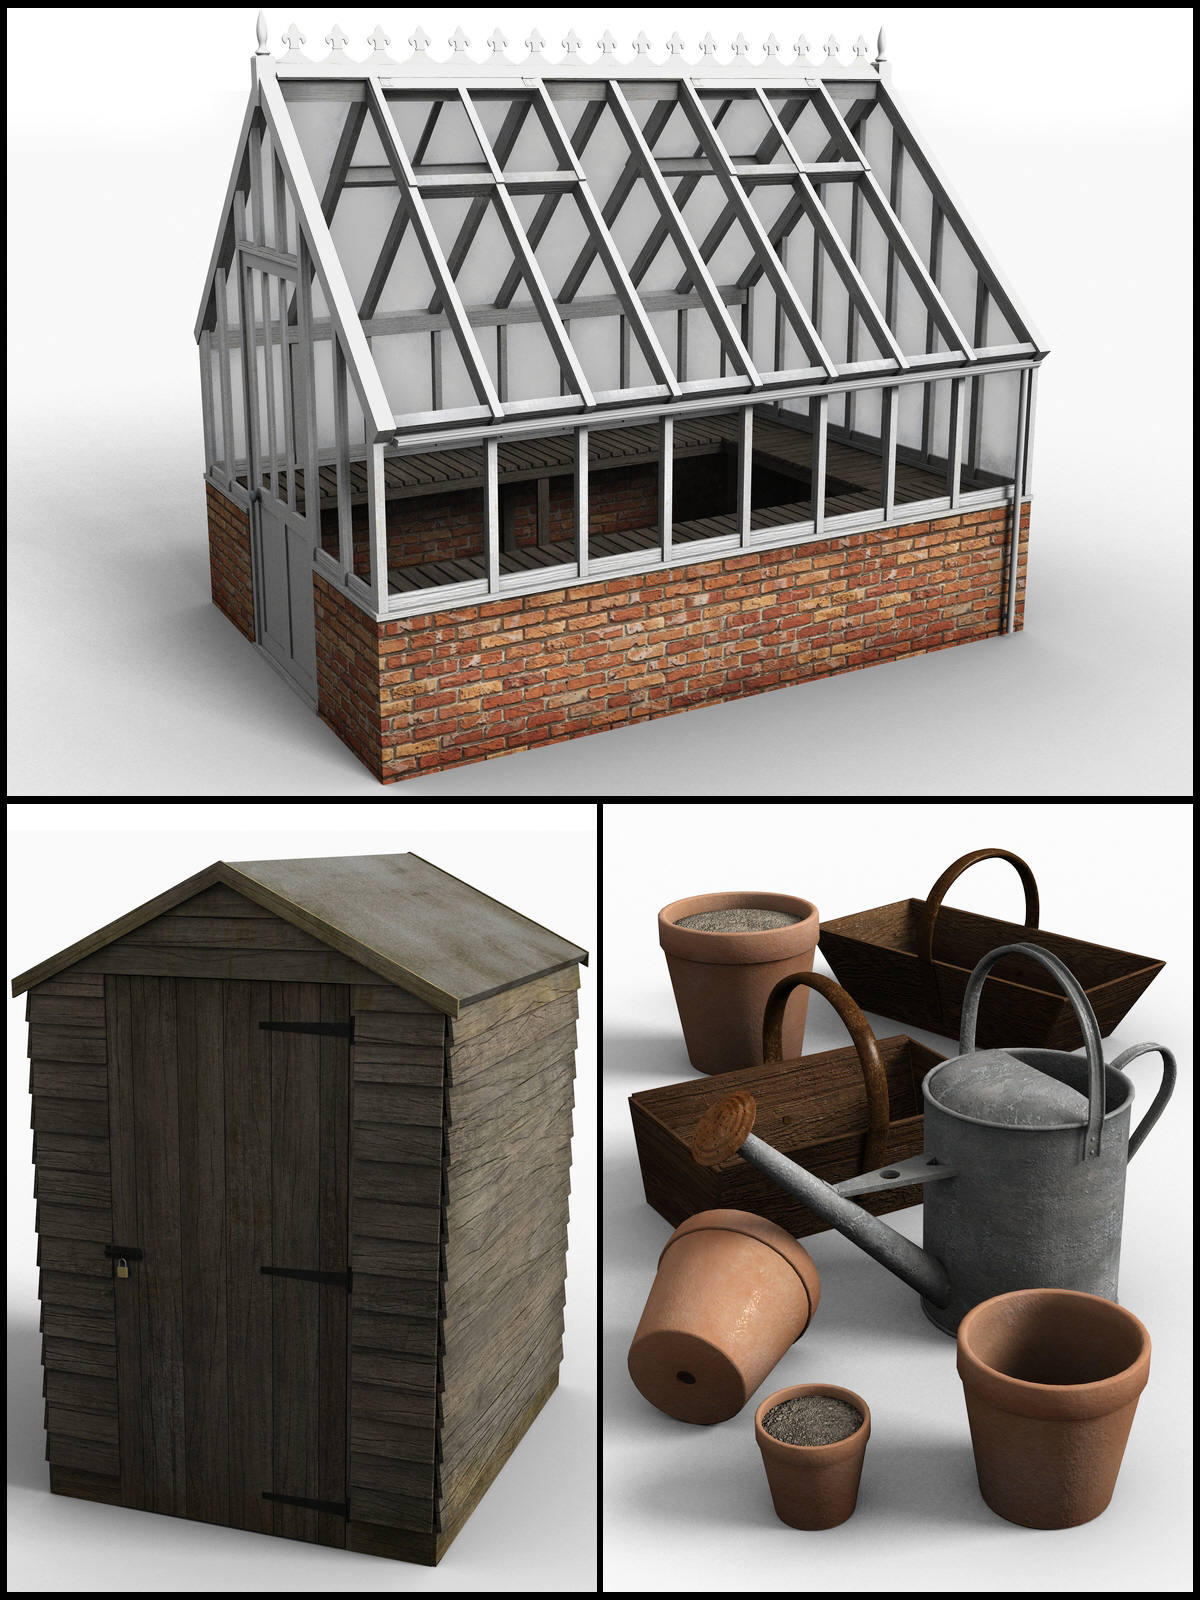 Victorian greenhouse set by DryJack